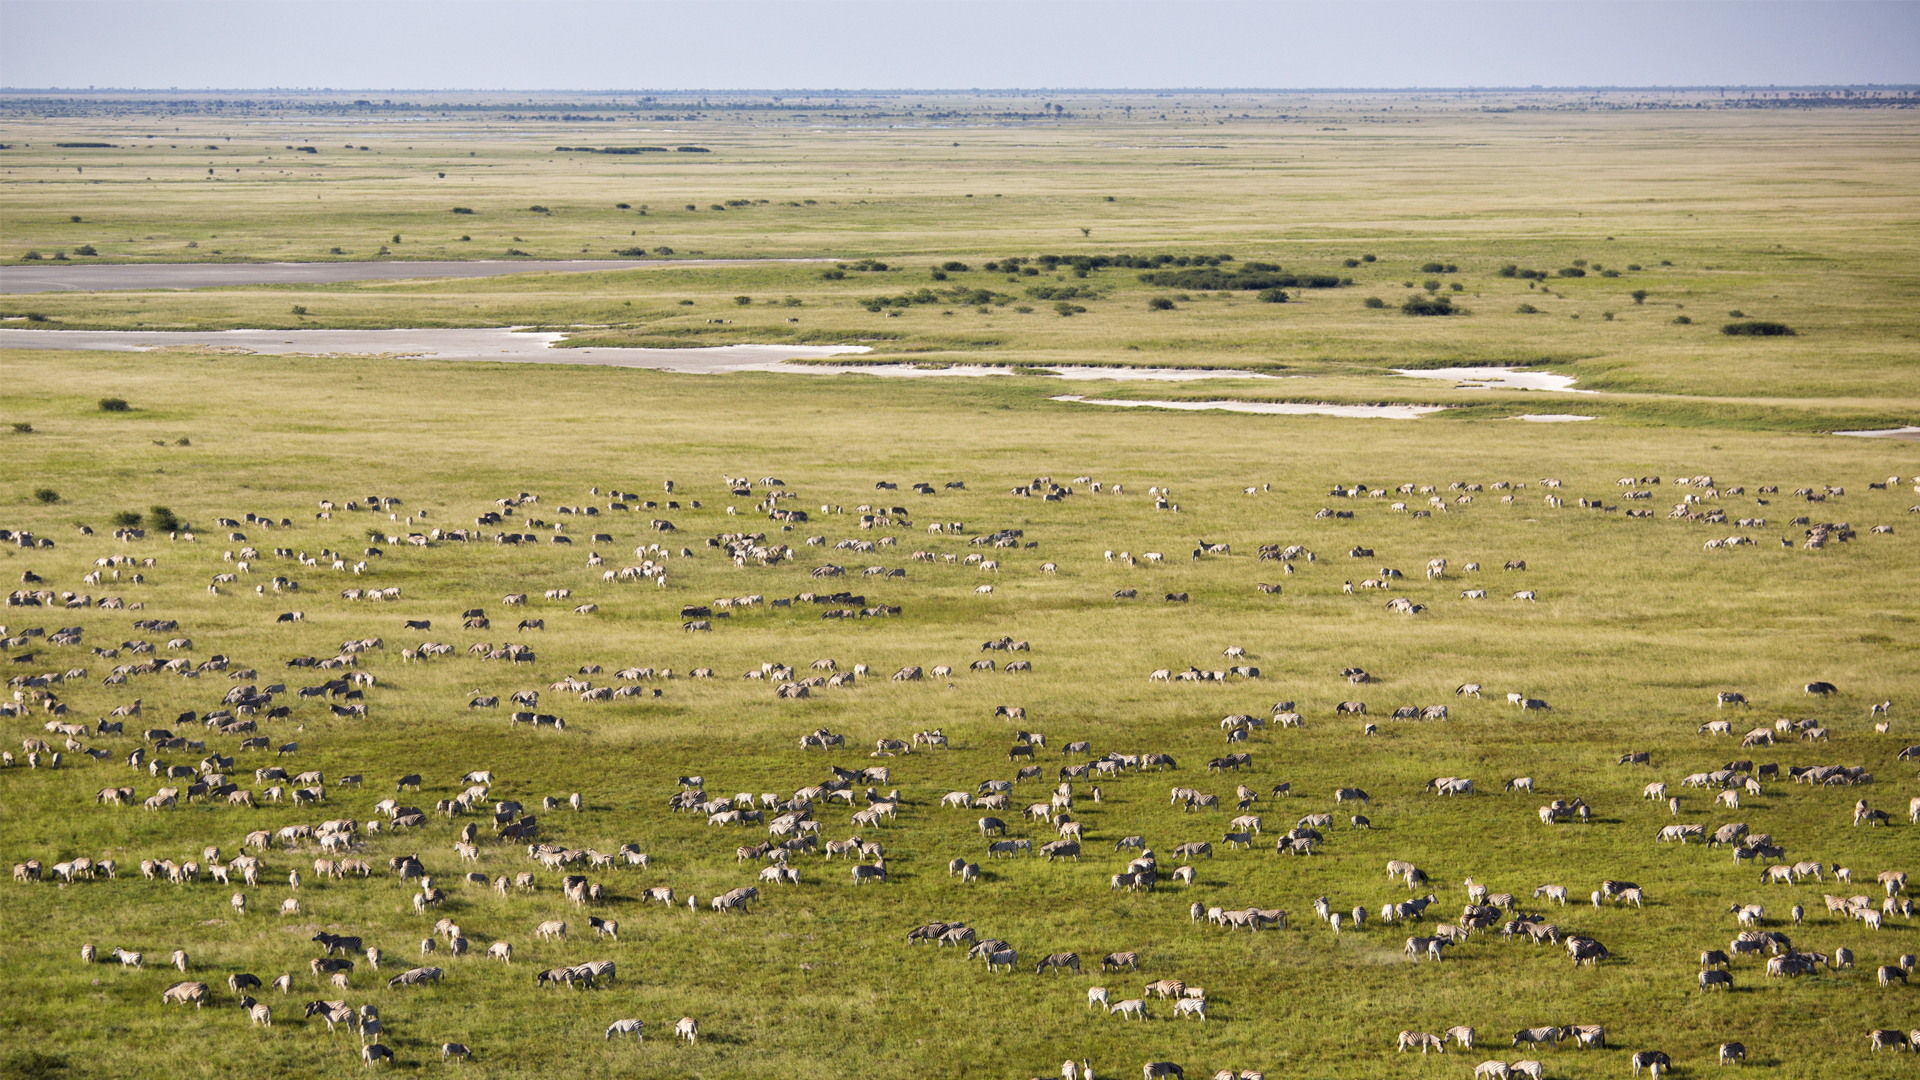 Botswana Regions Makgadikgadi Pans and Nxai Pan National Park migration